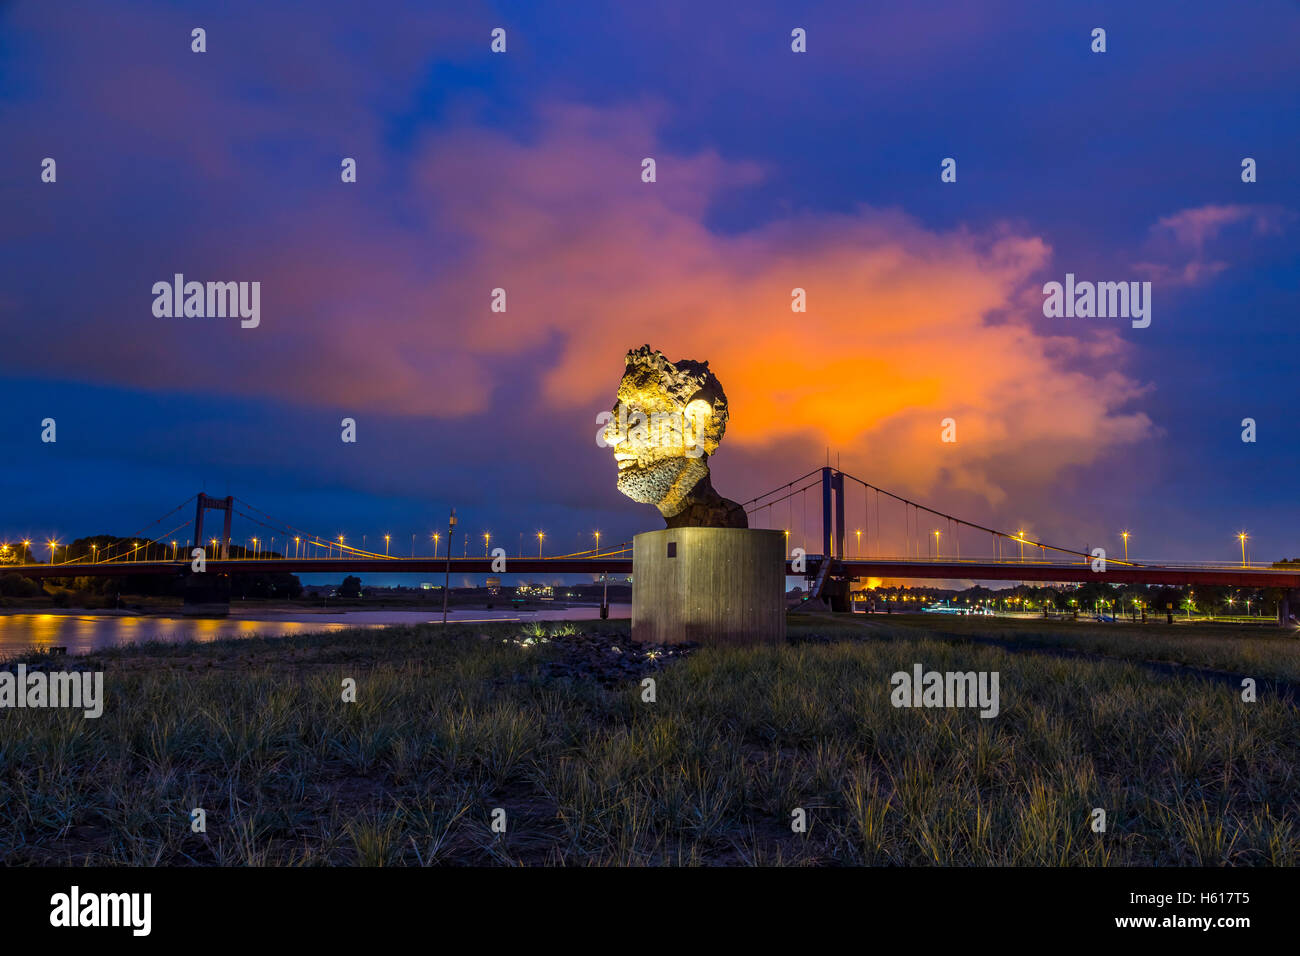 Sculpture 'The Echo of Poseidon', on the Mercatorinsel, in the Ruhrort inland port Duisburg, Germany, by - Stock Image